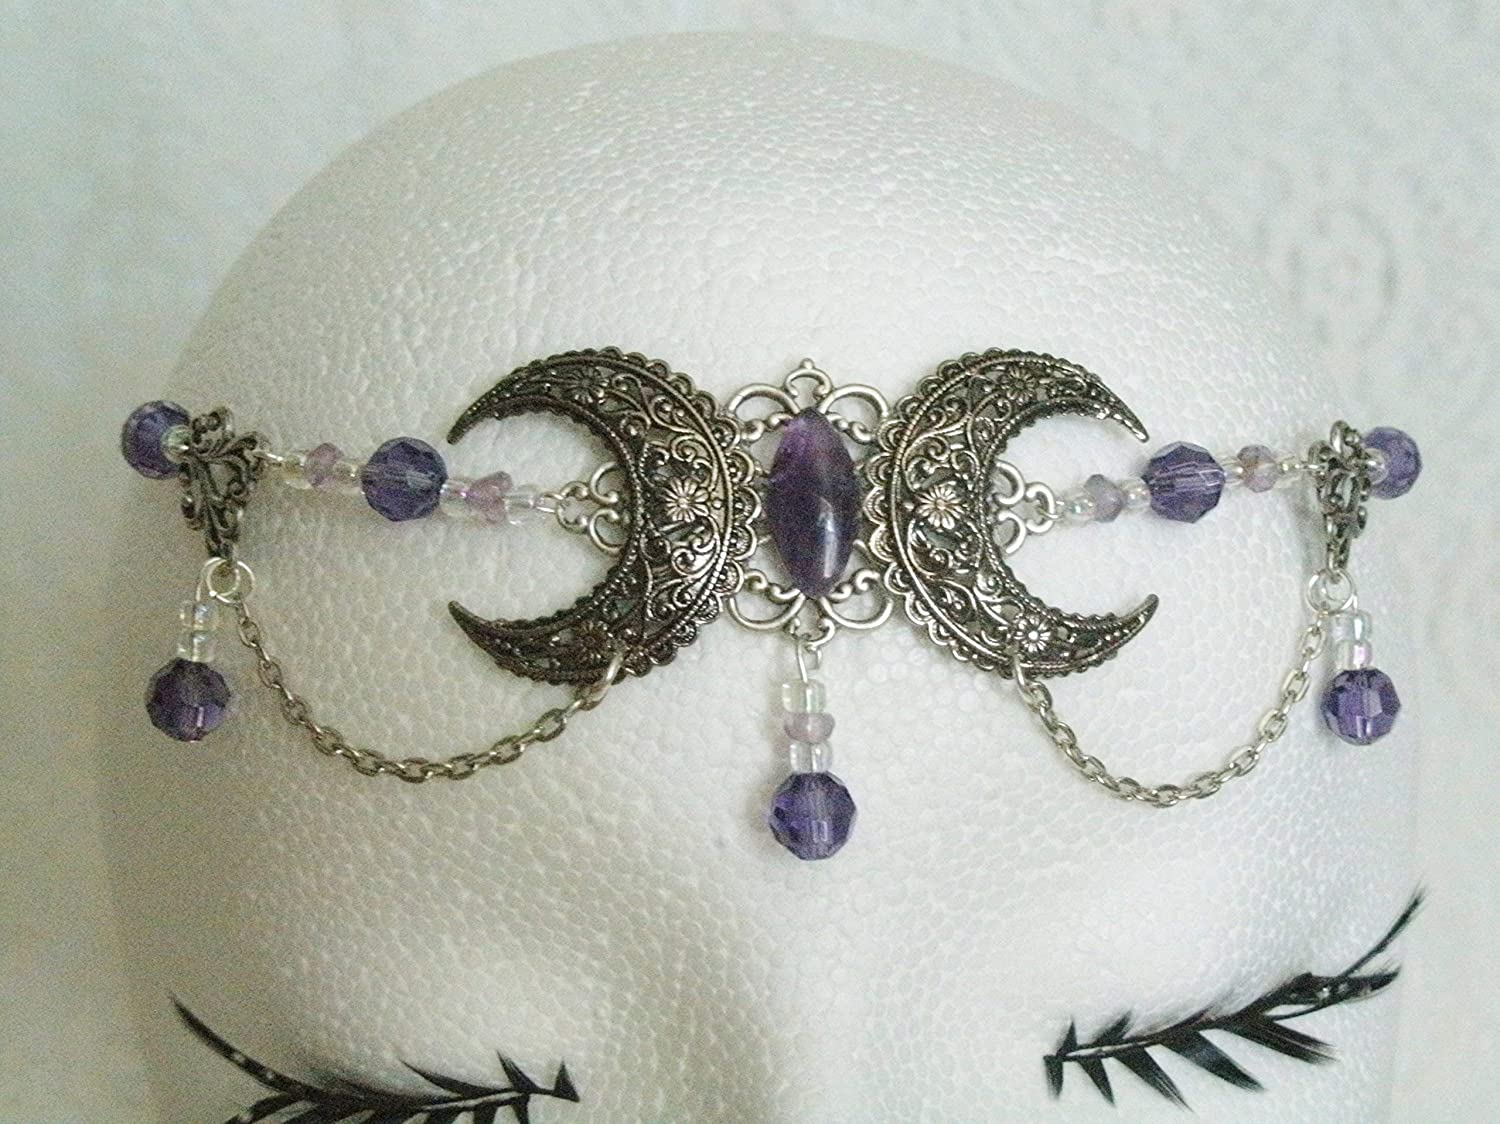 Amethyst Triple Moon Circlet handmade jewelry wiccan pagan wicca witch witchcraft goddess metaphysical headpiece